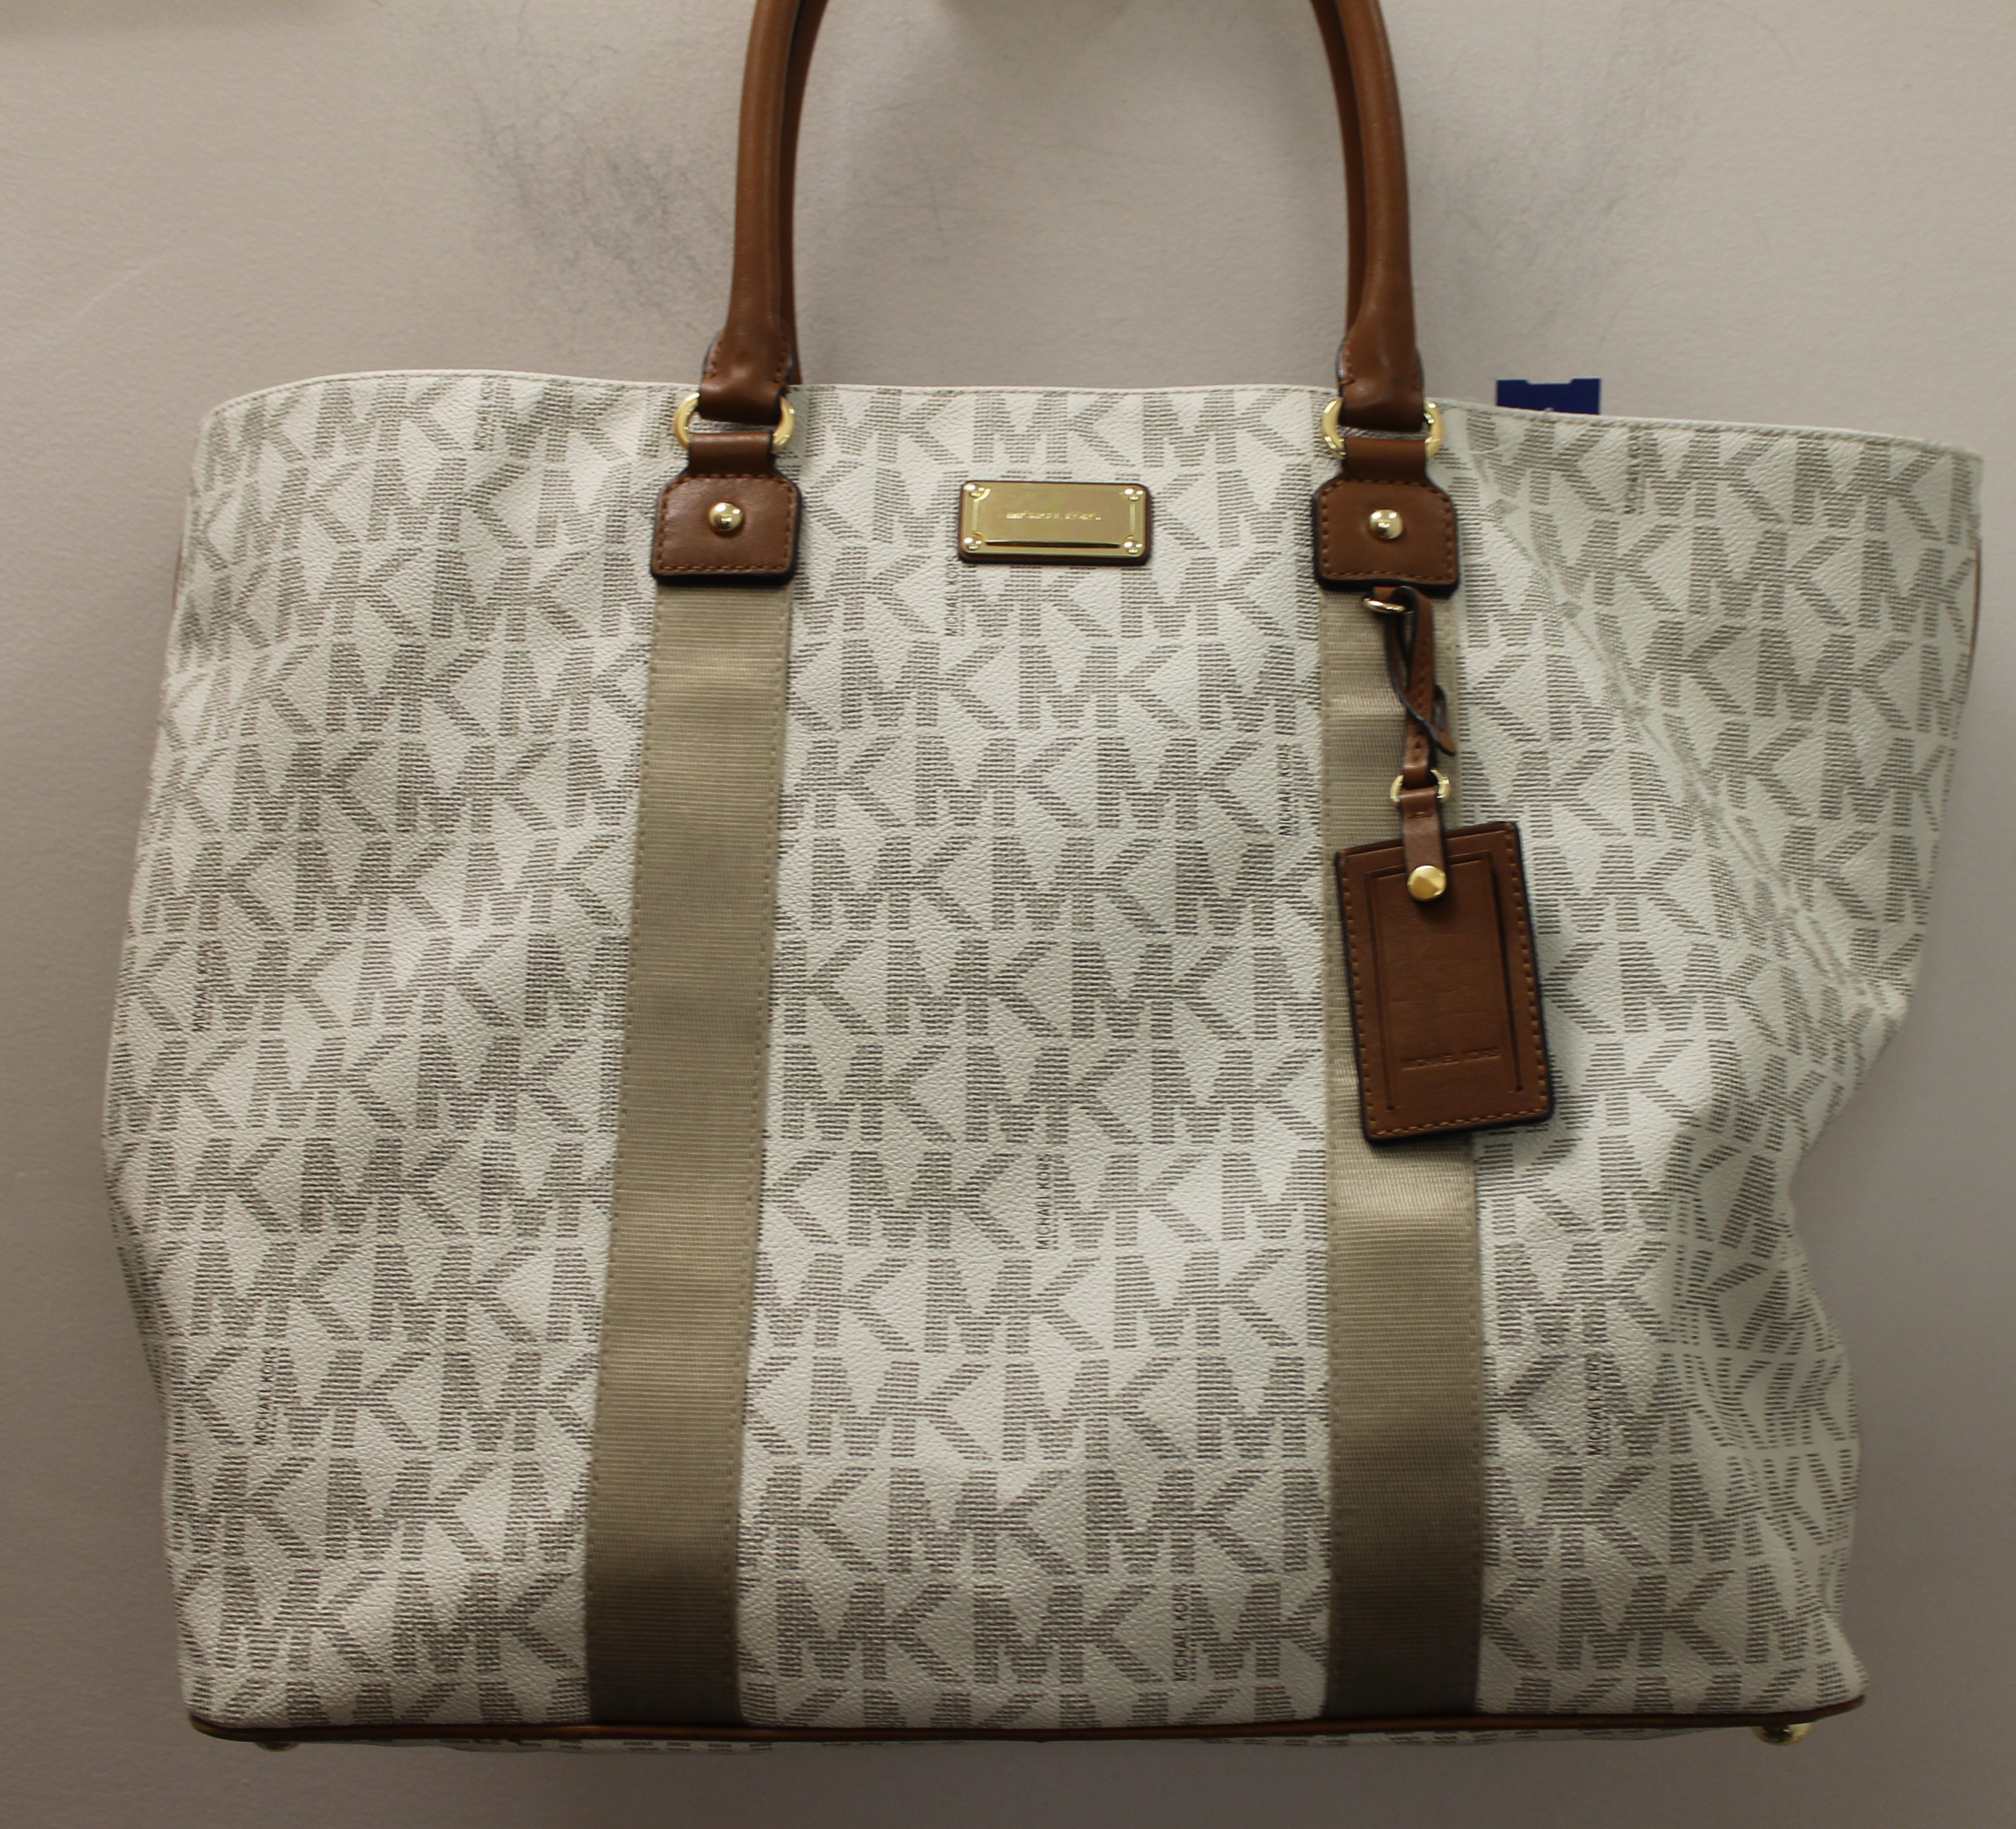 MICHAEL-KORS-WHITE-BROWN-GRAY-LEATHER-AND-CANVAS-LOGO-TOTE_69120J.jpg